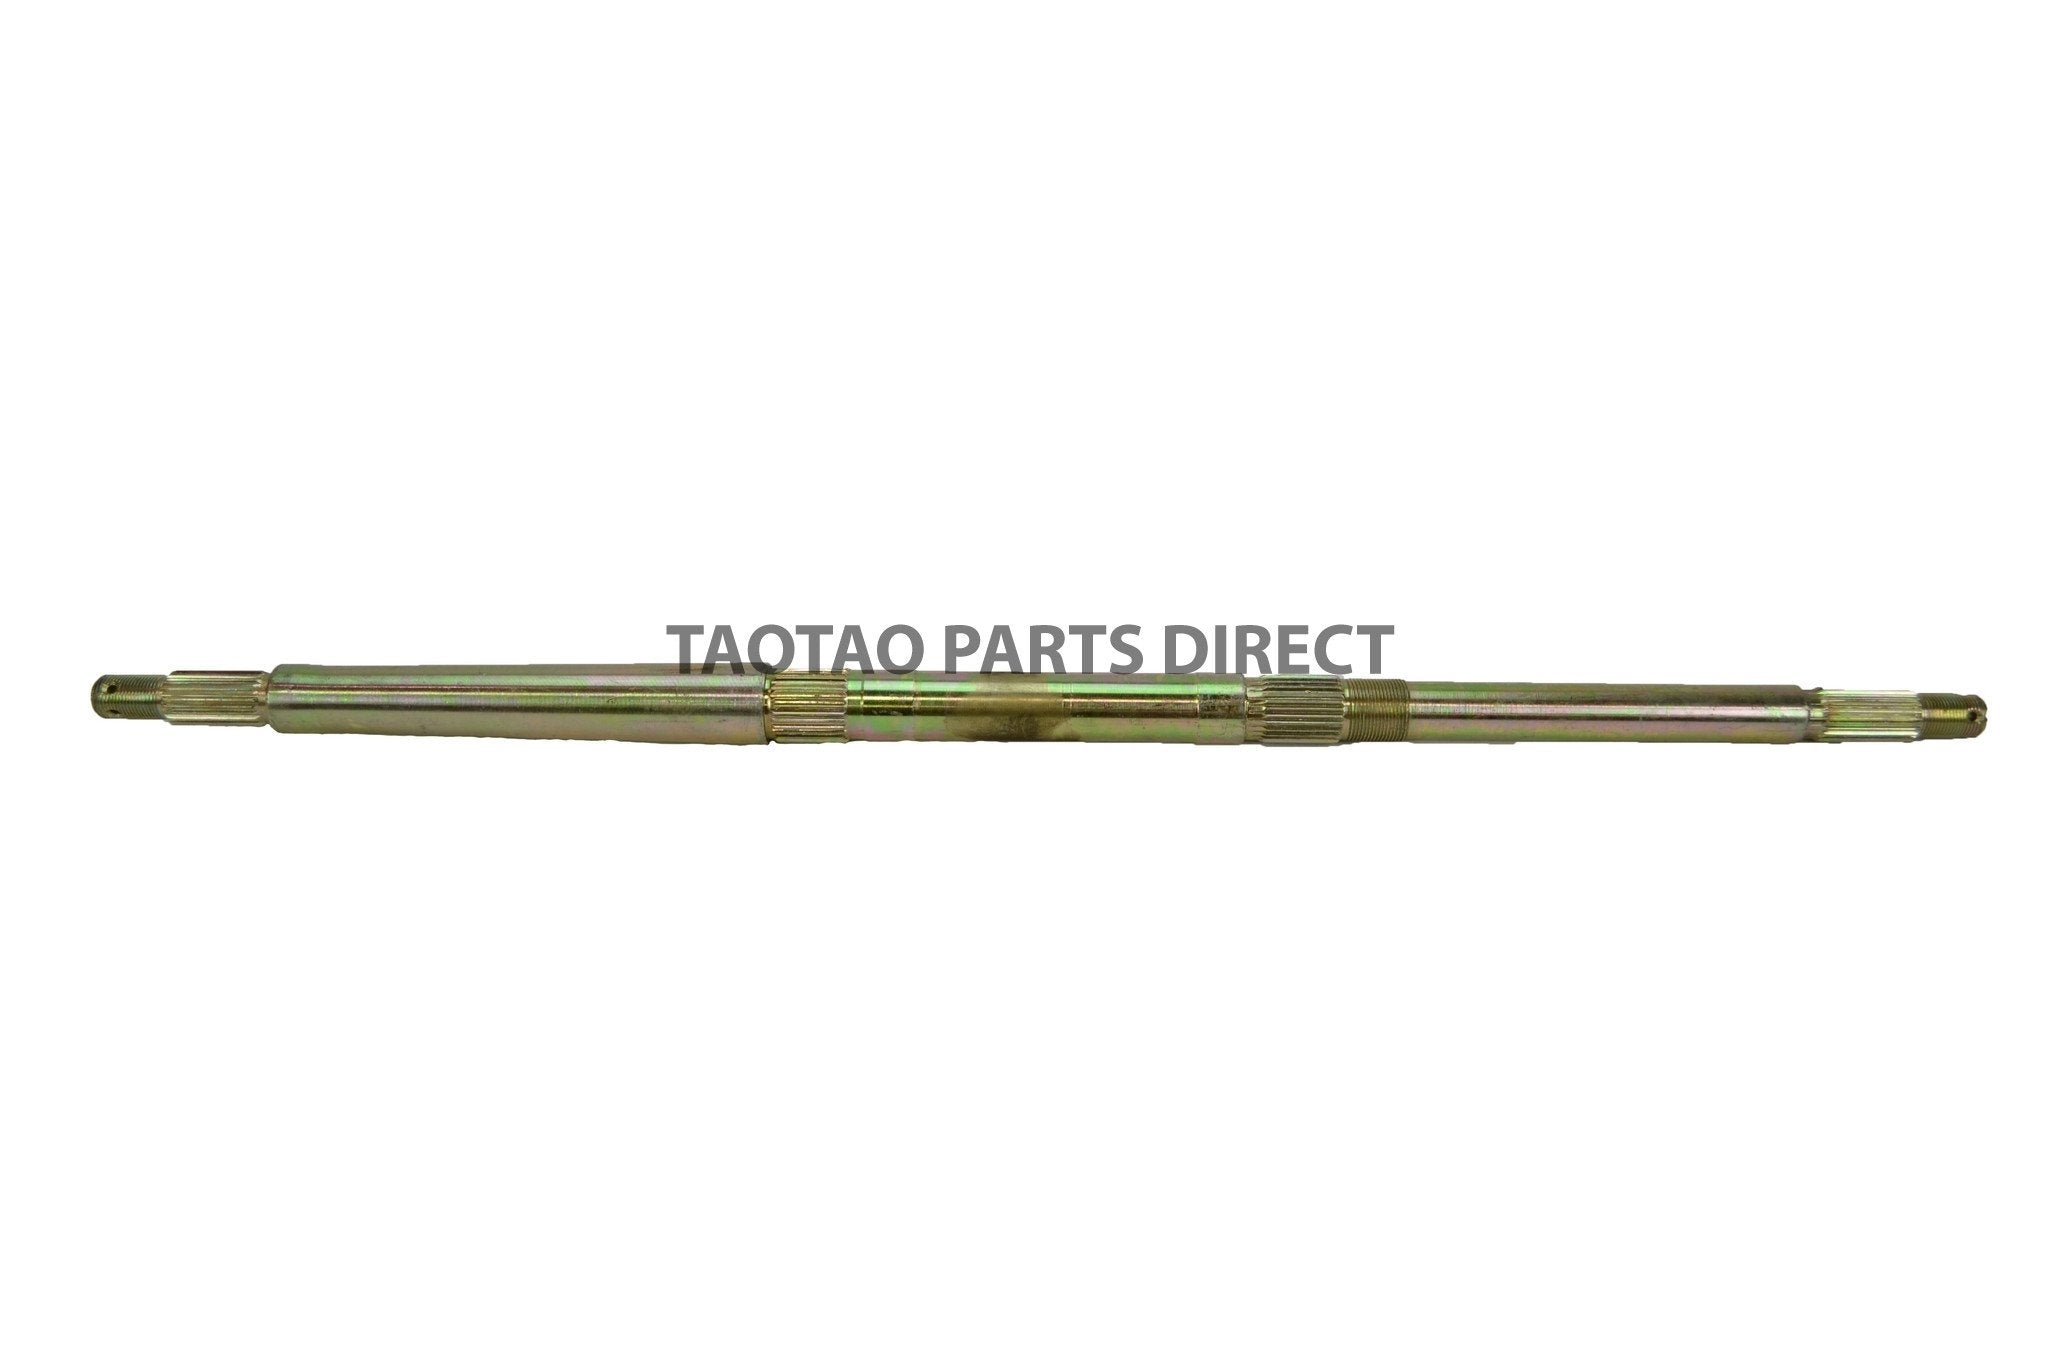 ATA150 Rear Axle | TaoTao Parts Direct